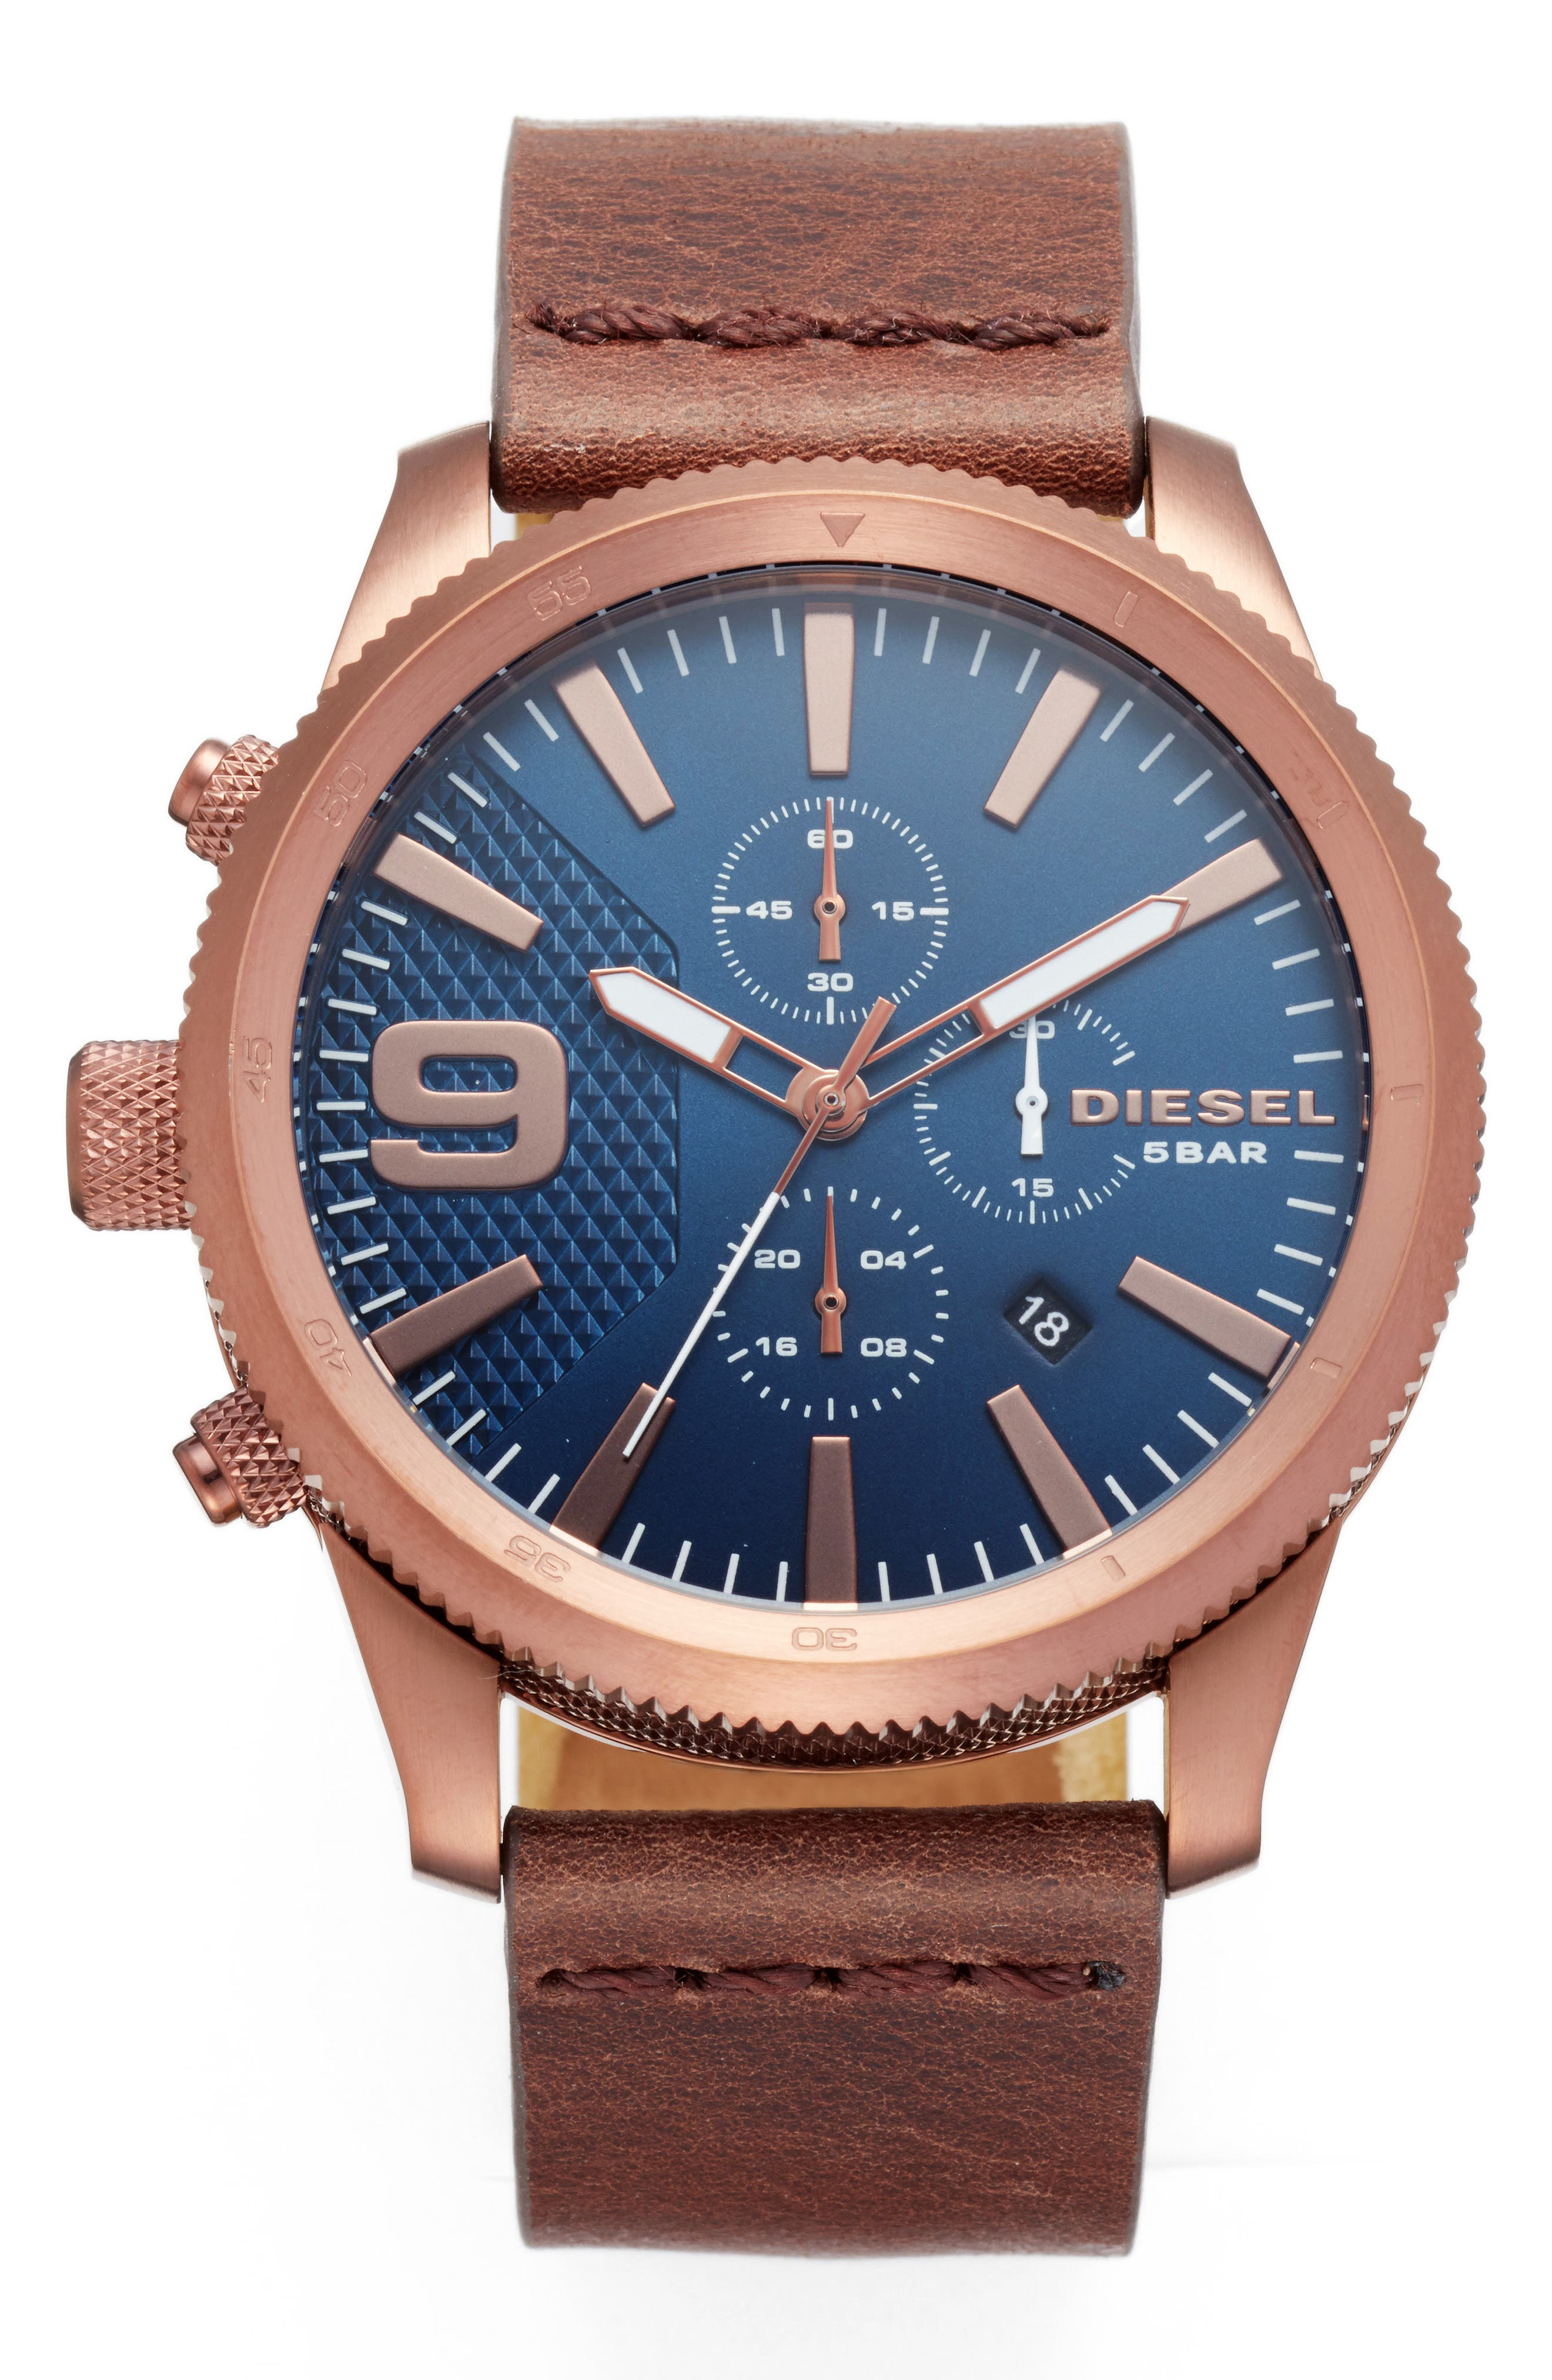 DIESEL<SUP>®</SUP> Chronograph Leather Strap Watch, 45mm, Main, color, 200